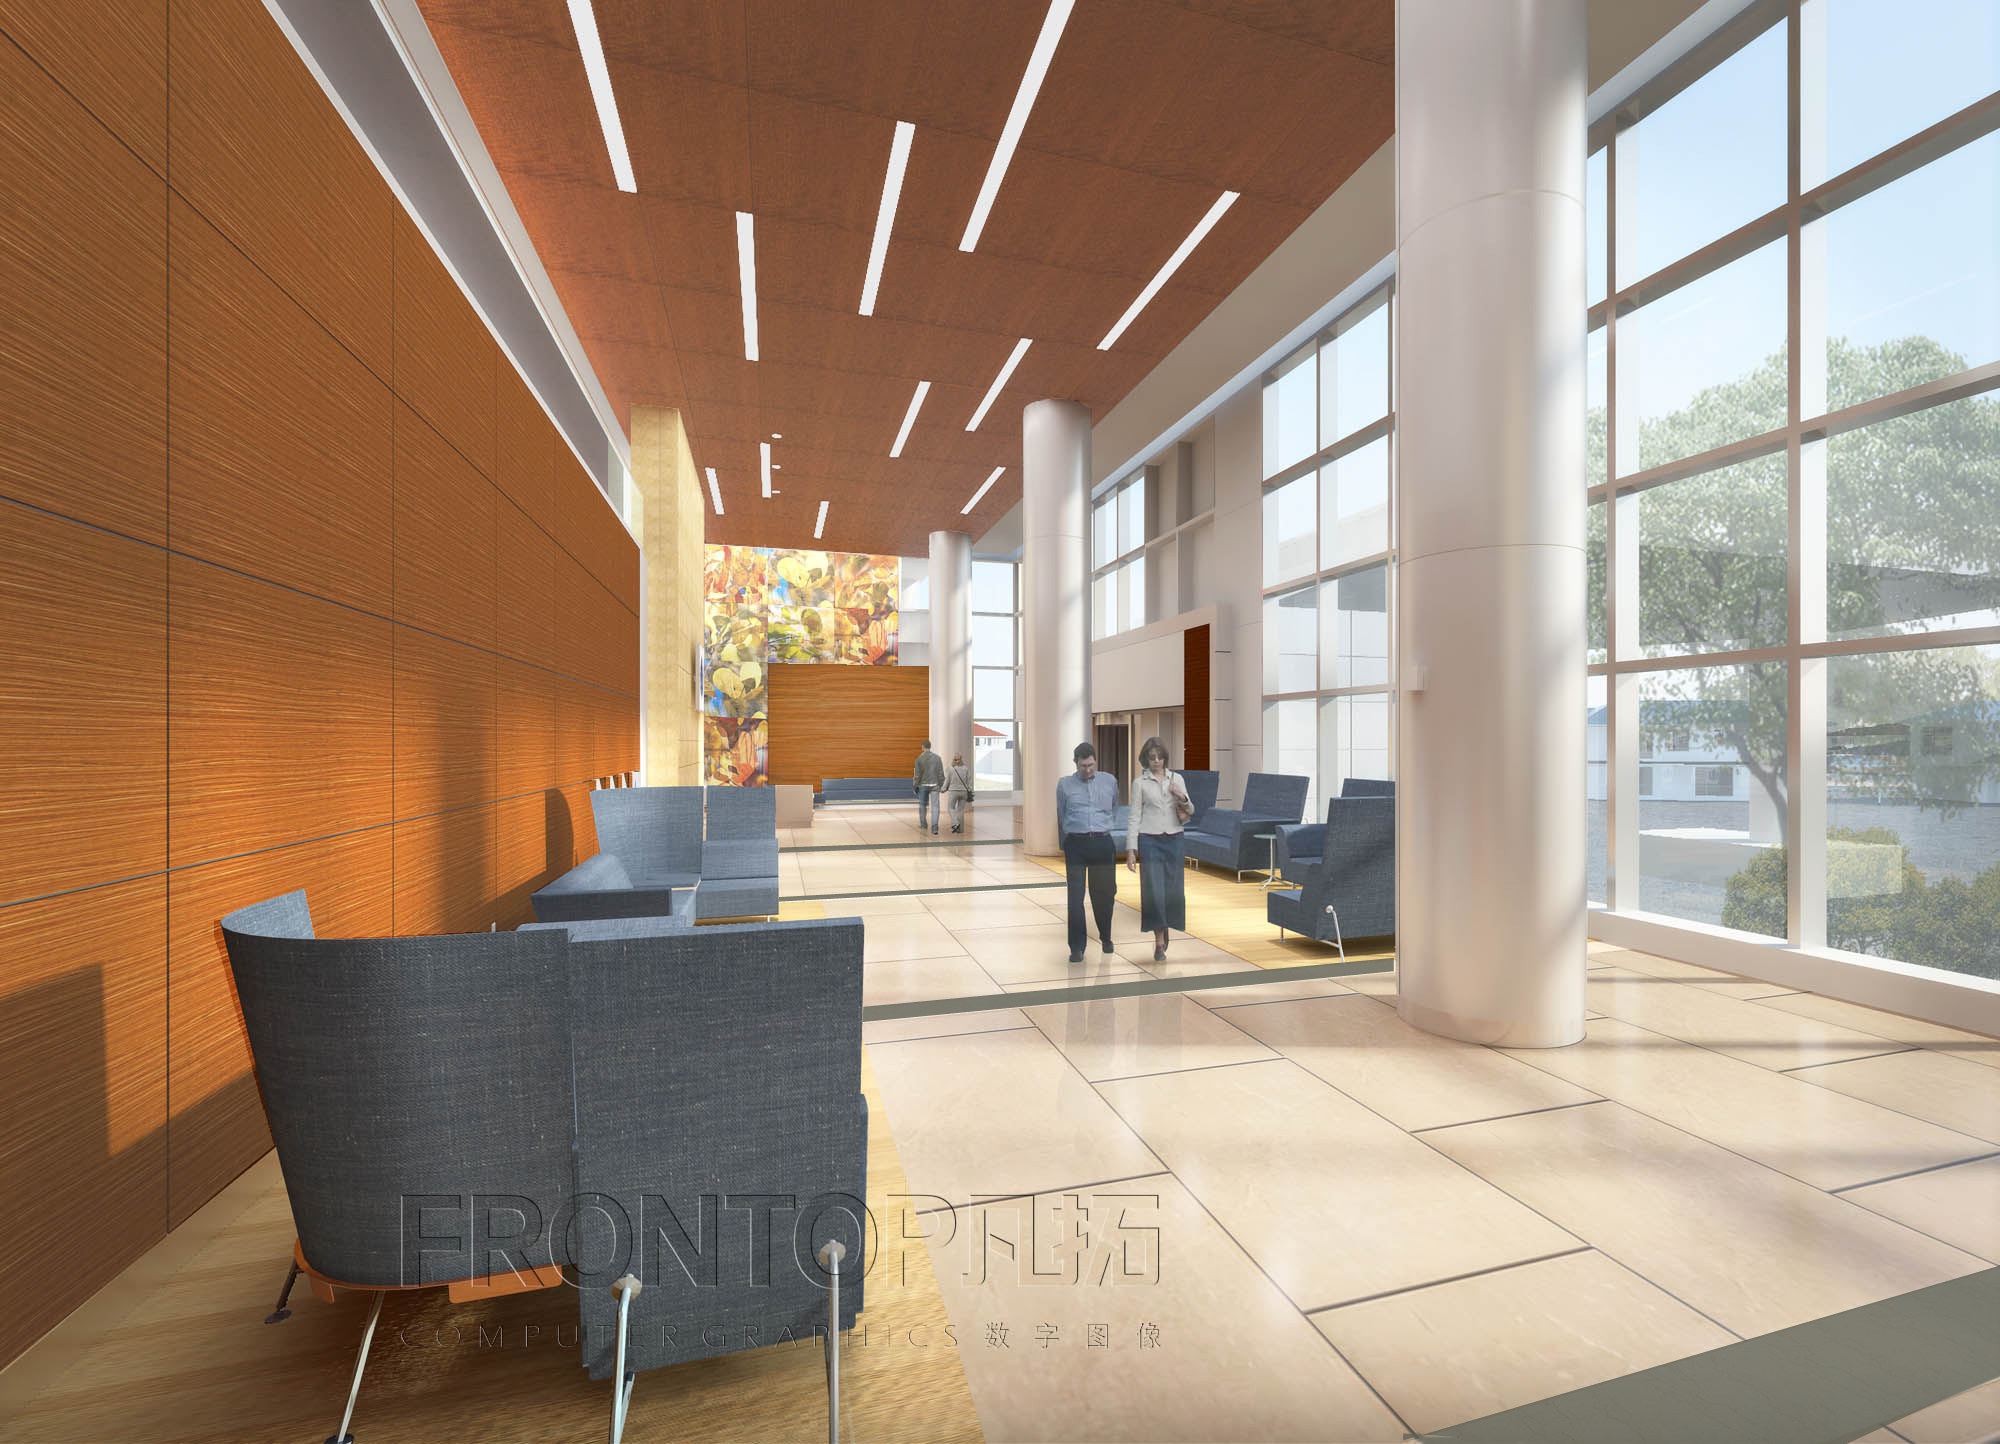 An architectural rendering of the main An architectural rendering of the main lobby in the new tower at UConn John Dempsey Hospital.